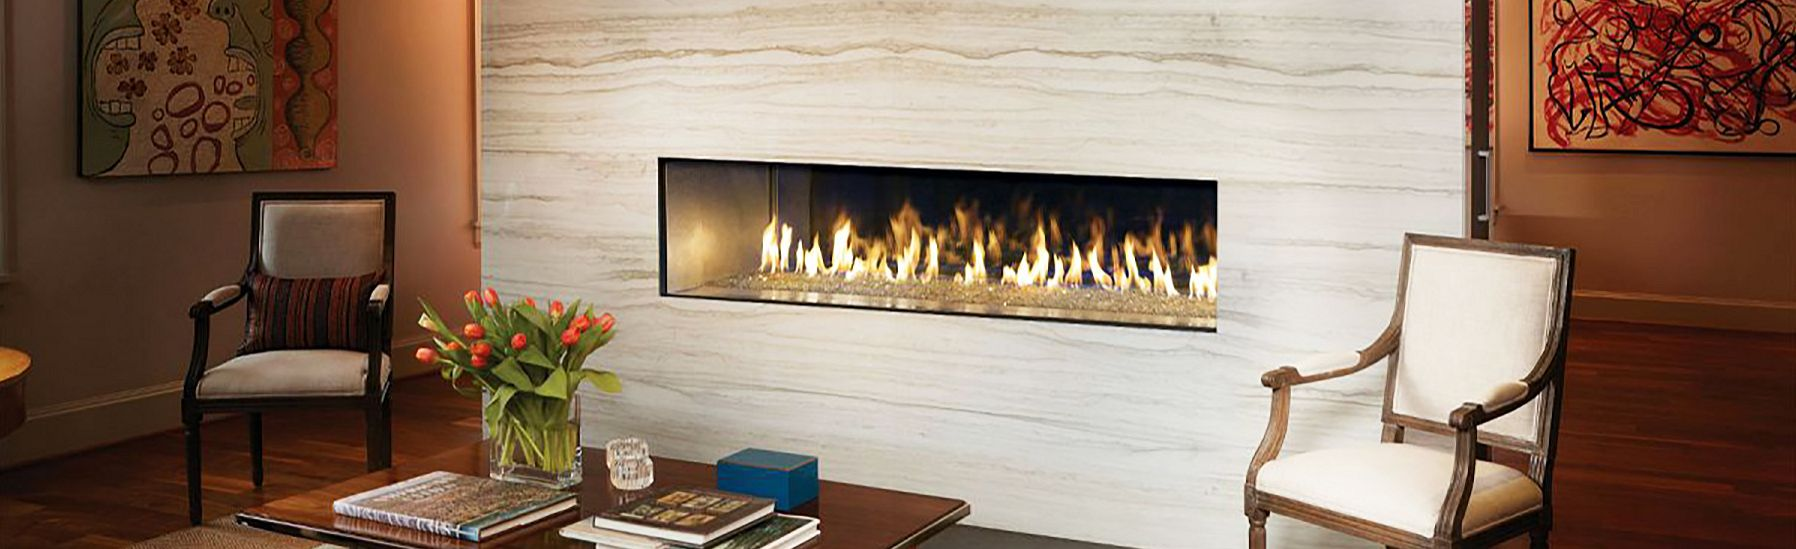 The Roar of a Fire Experience the warmth and magic of a family gathering around a new fireplace